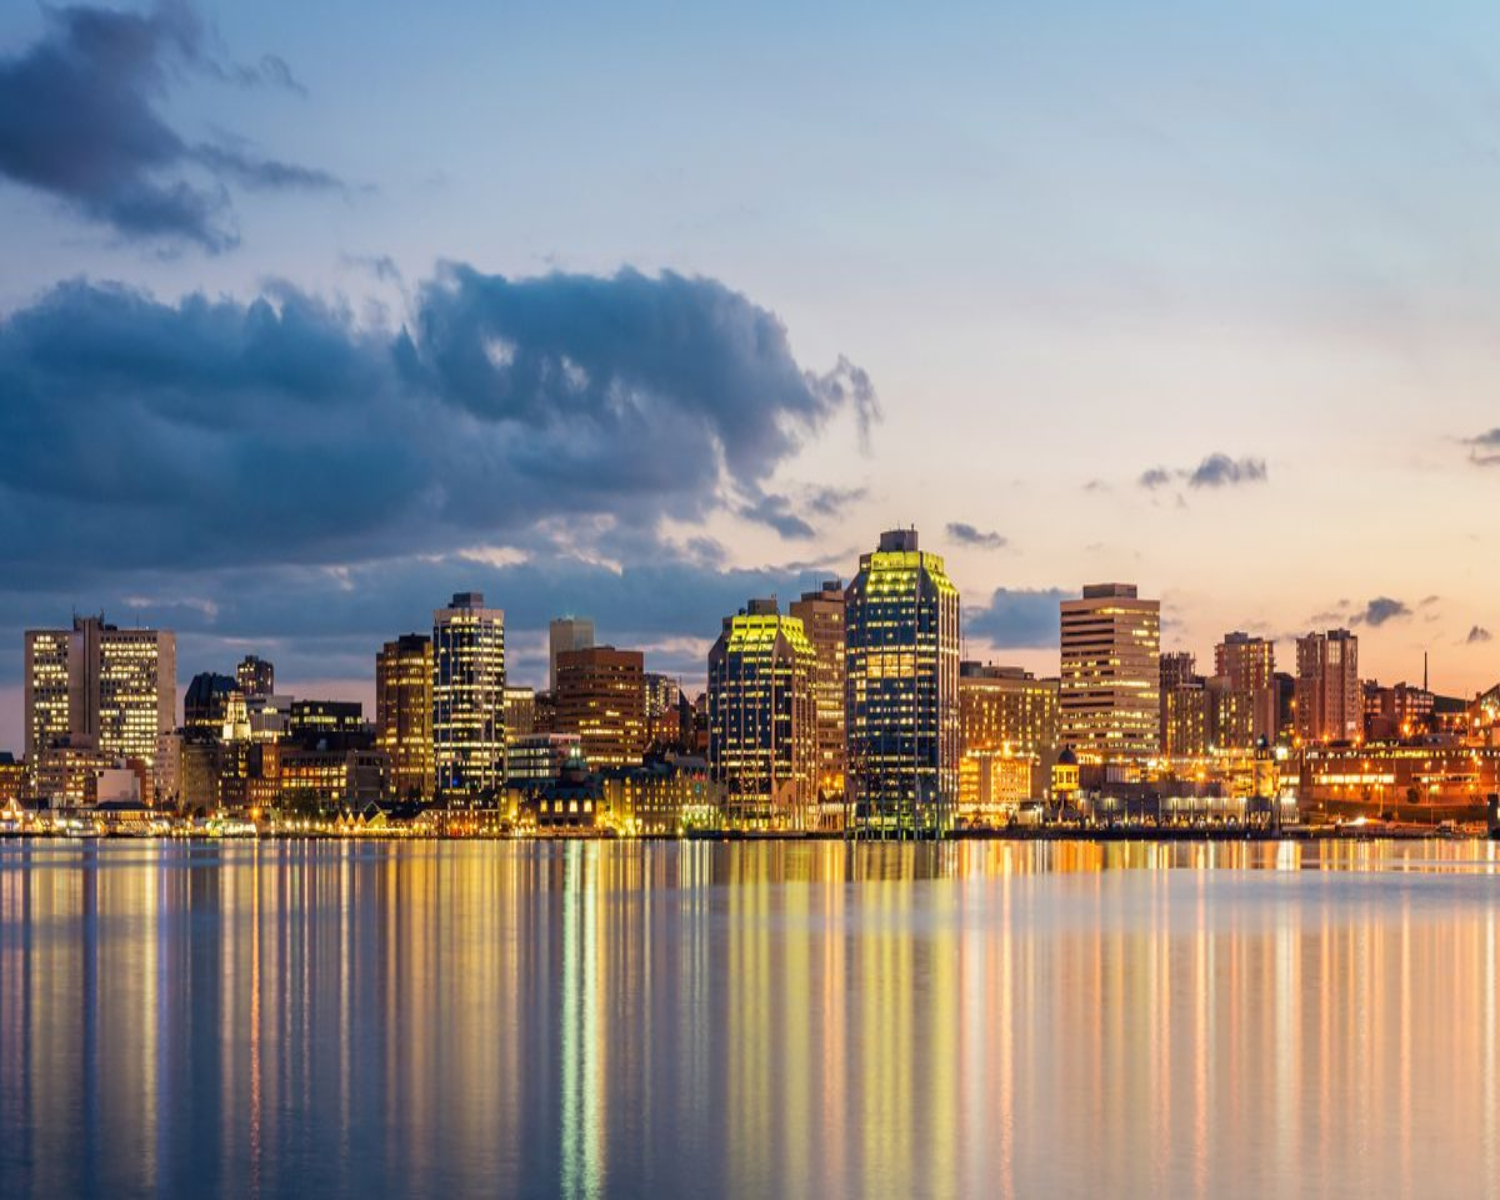 https://www.canadaupdates.com/2020/09/19/how-is-the-quality-of-life-moving-to-halifax-in-canada/#Job_opportunities_in_Halifax